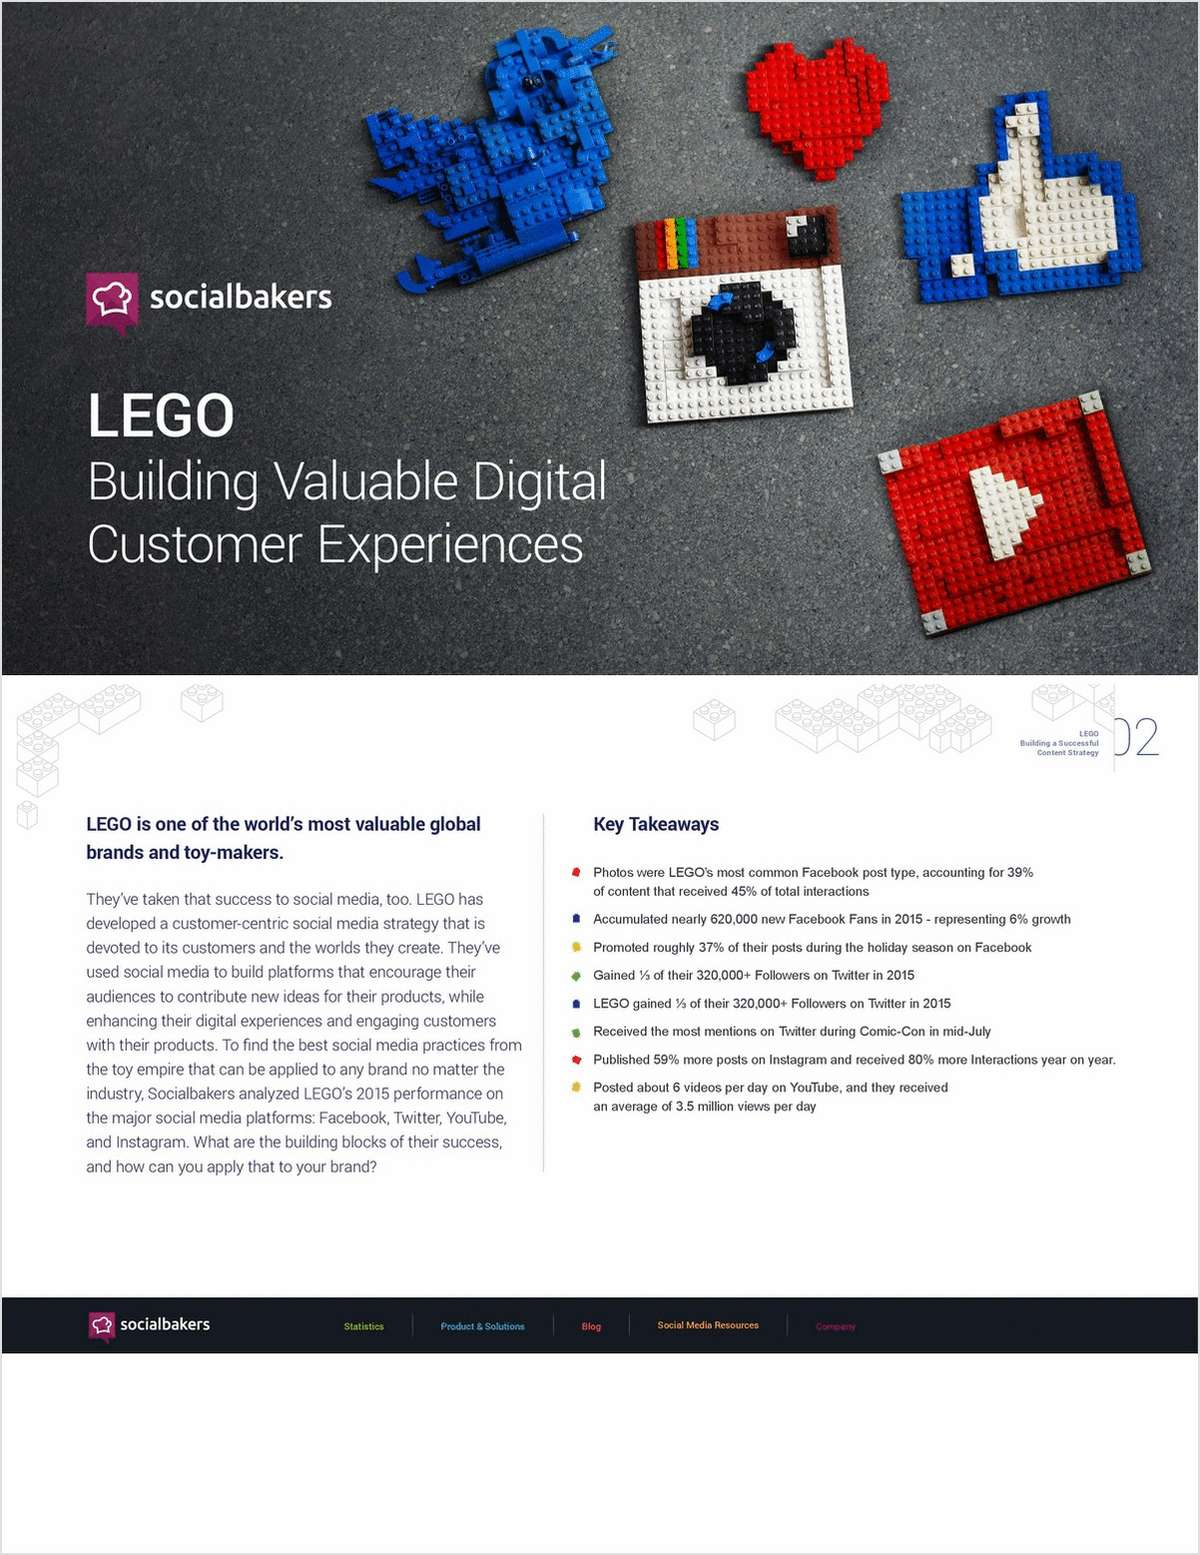 LEGO: Building Valuable Digital Customer Experiences